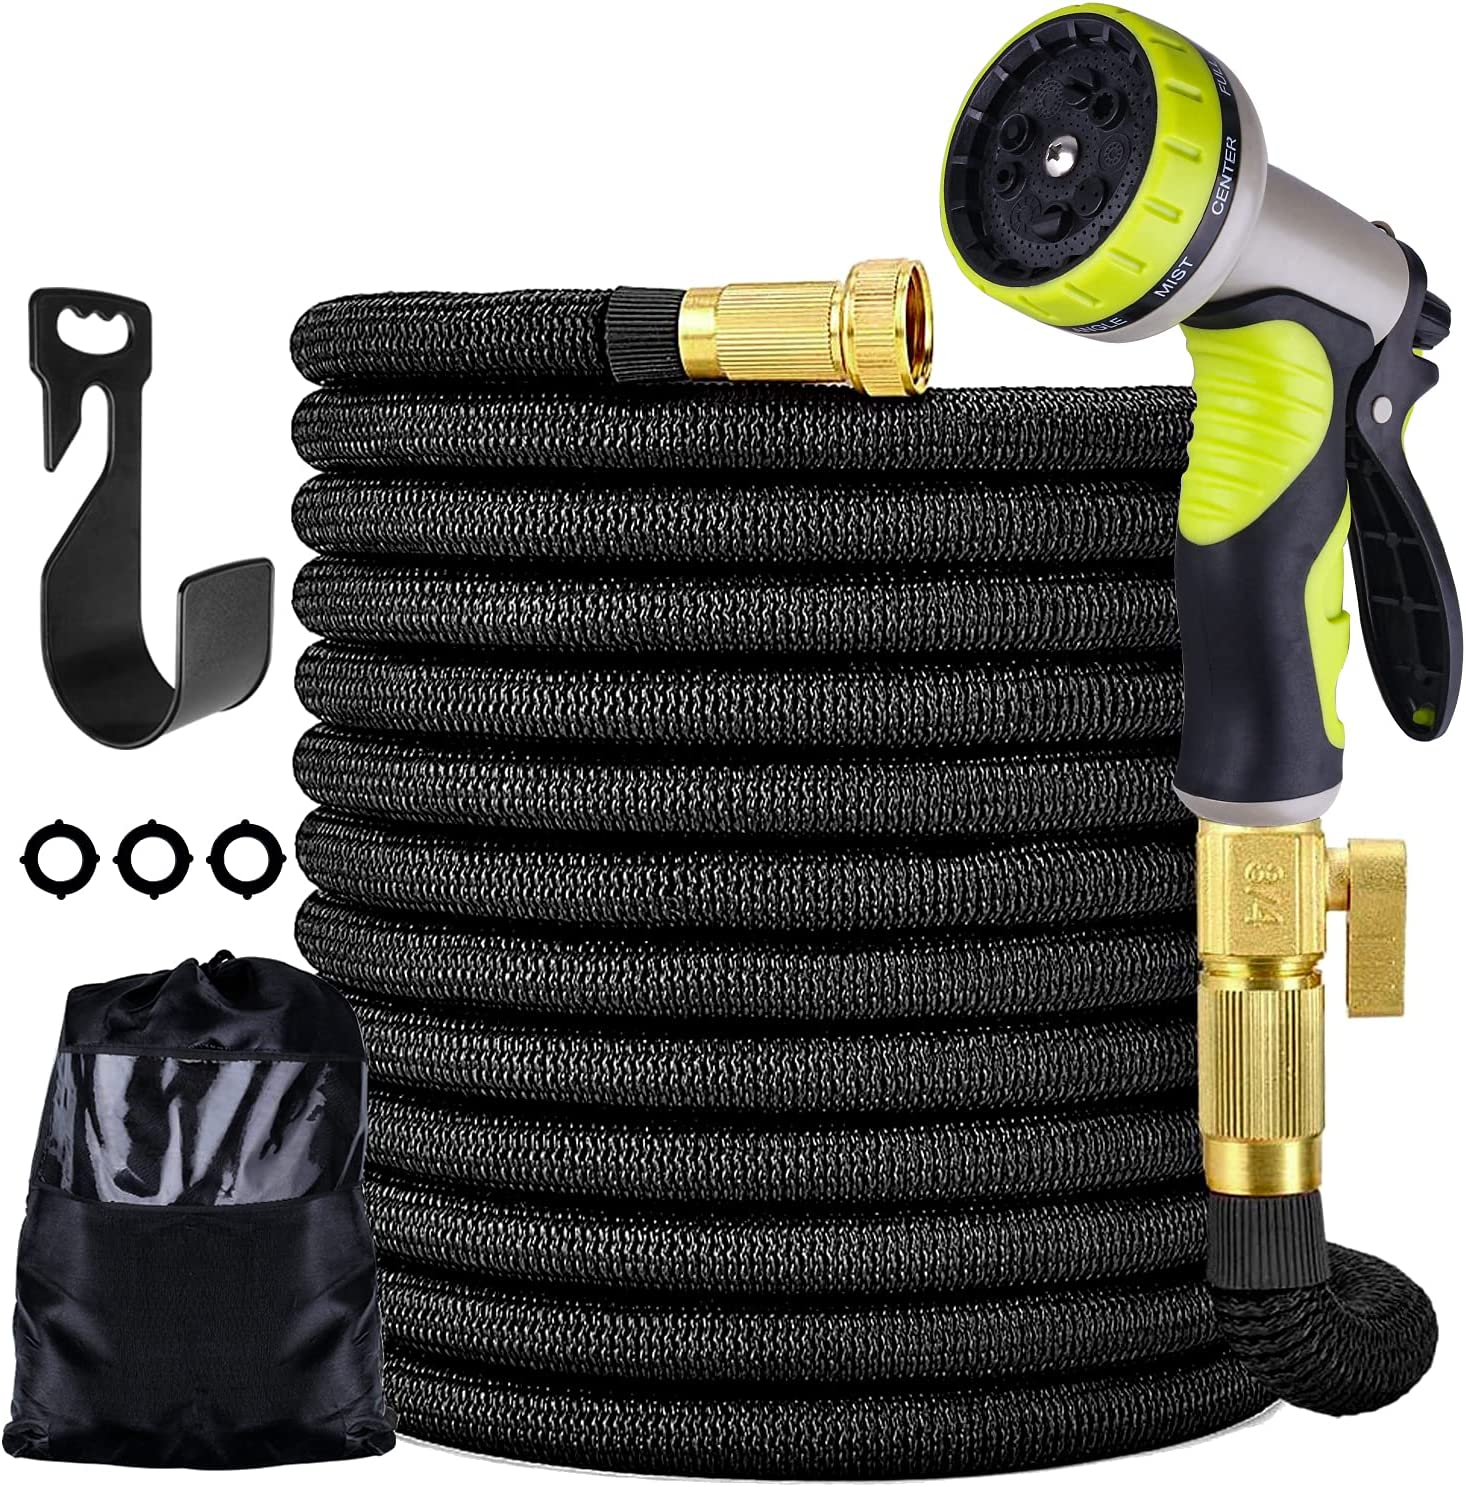 Furnizone 50 ft Expandable Garden Hose with 9 Function Nozzle,4-Layer Latex Core Flexible Leakproof Water Hose with Solid 3/4